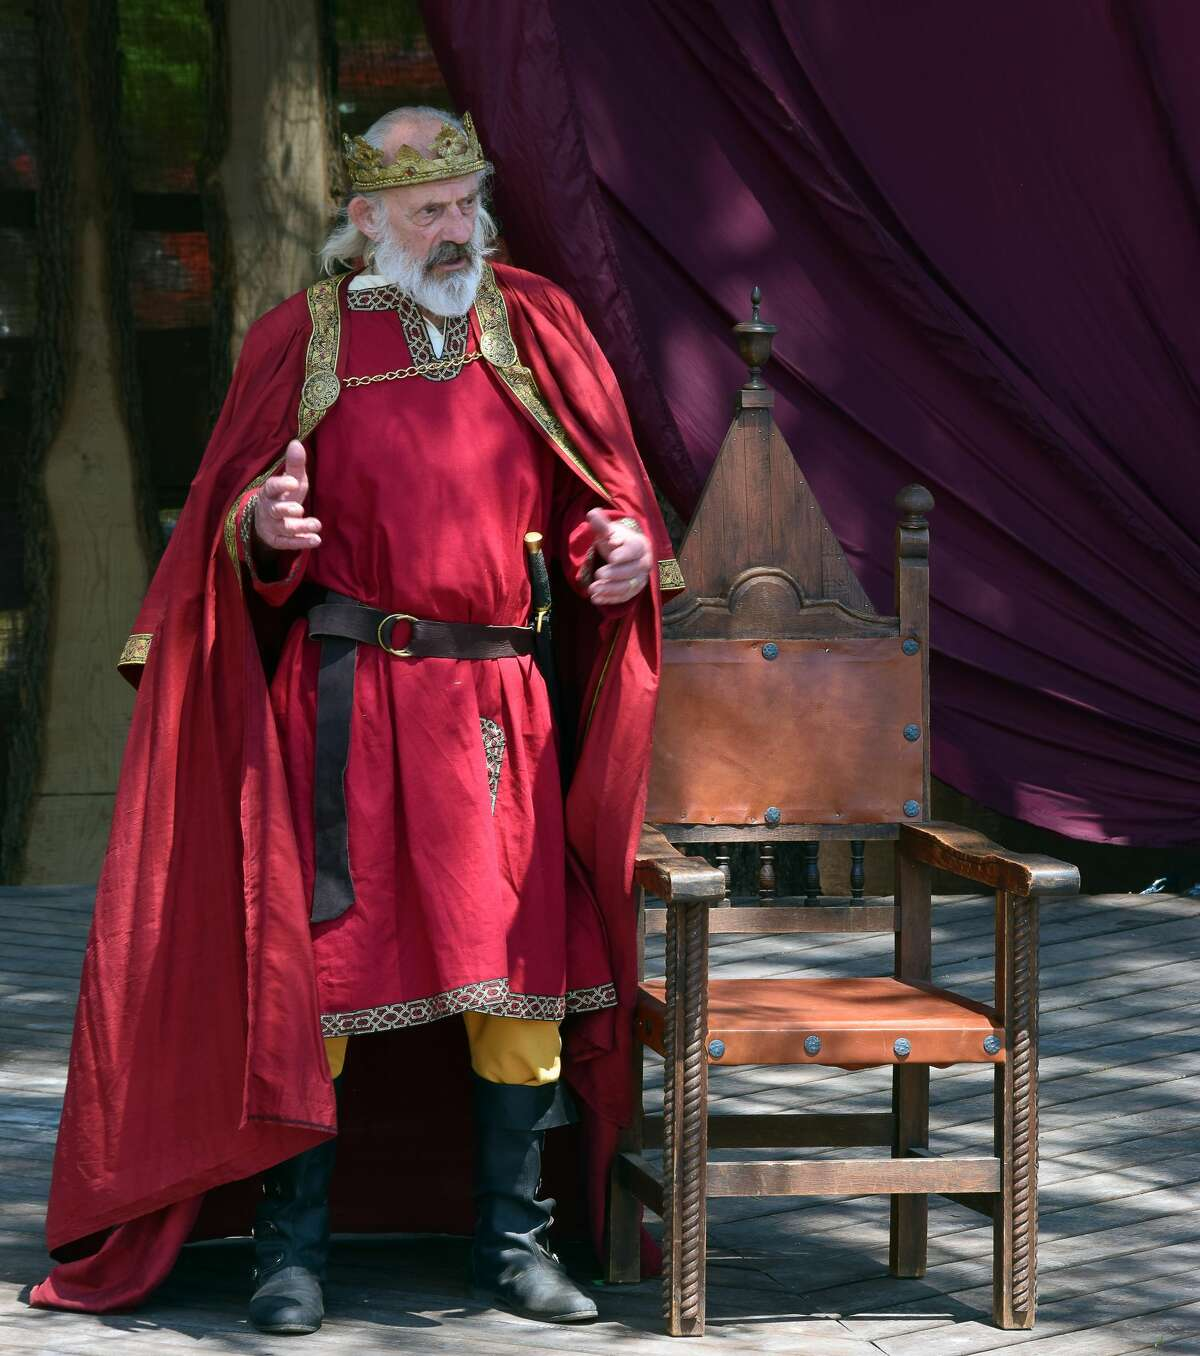 """Christopher Lloyd, known for the sitcom """"Taxi"""" and the """"Back to the Future"""" films, takes on the most monumental role of his career, playing the title character in Shakespeare & Company's """"King Lear,"""" running through Aug. 28, 2021, on the company's New Spruce Stage. (Katie McKellick/Shakespeare & Company)"""